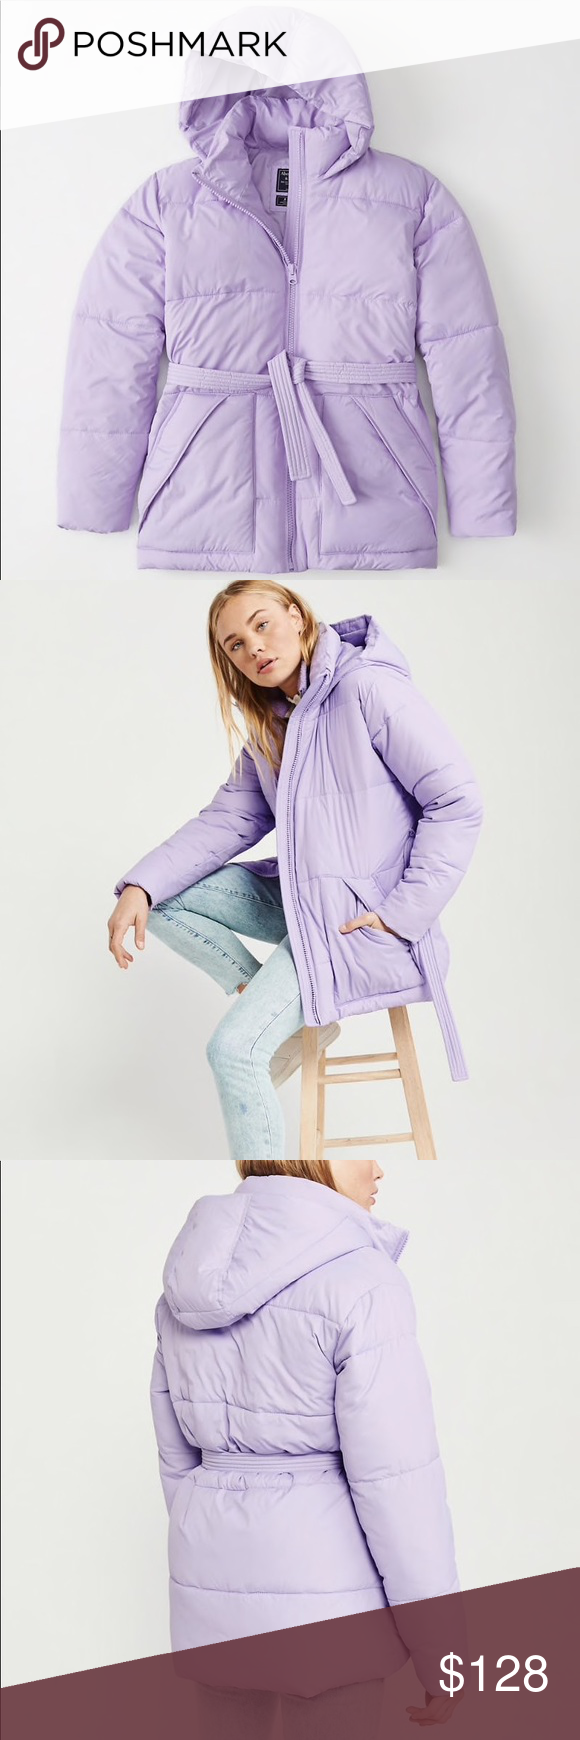 Abercrombie Fitch Lilac Belted Puffer Jacket Nwt Adorable Stylish And Warm Abercrombie Fitch Lilac P Fashion Clothes Design Abercrombie And Fitch Jackets [ 1740 x 580 Pixel ]